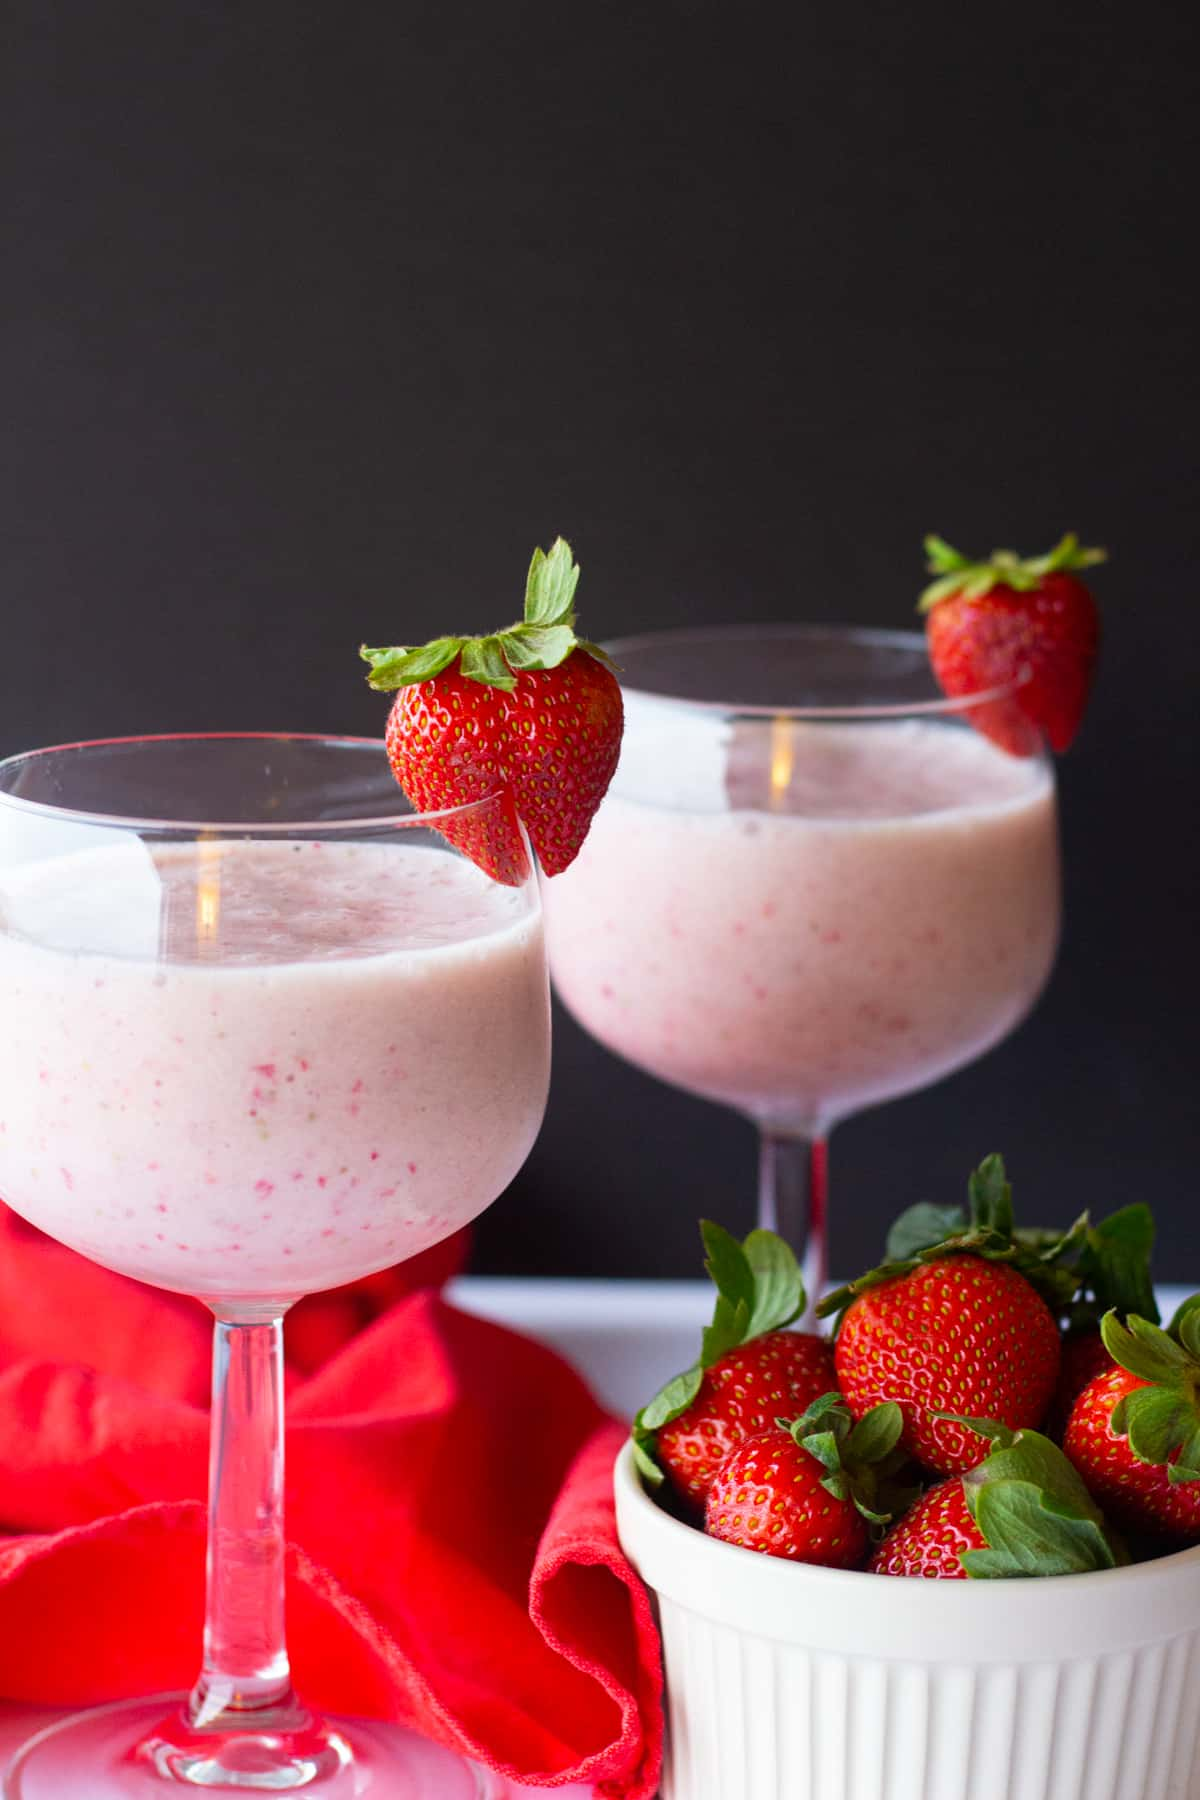 This healthy milkshake is very simple and easy. Bananas are used instead of ice cream.